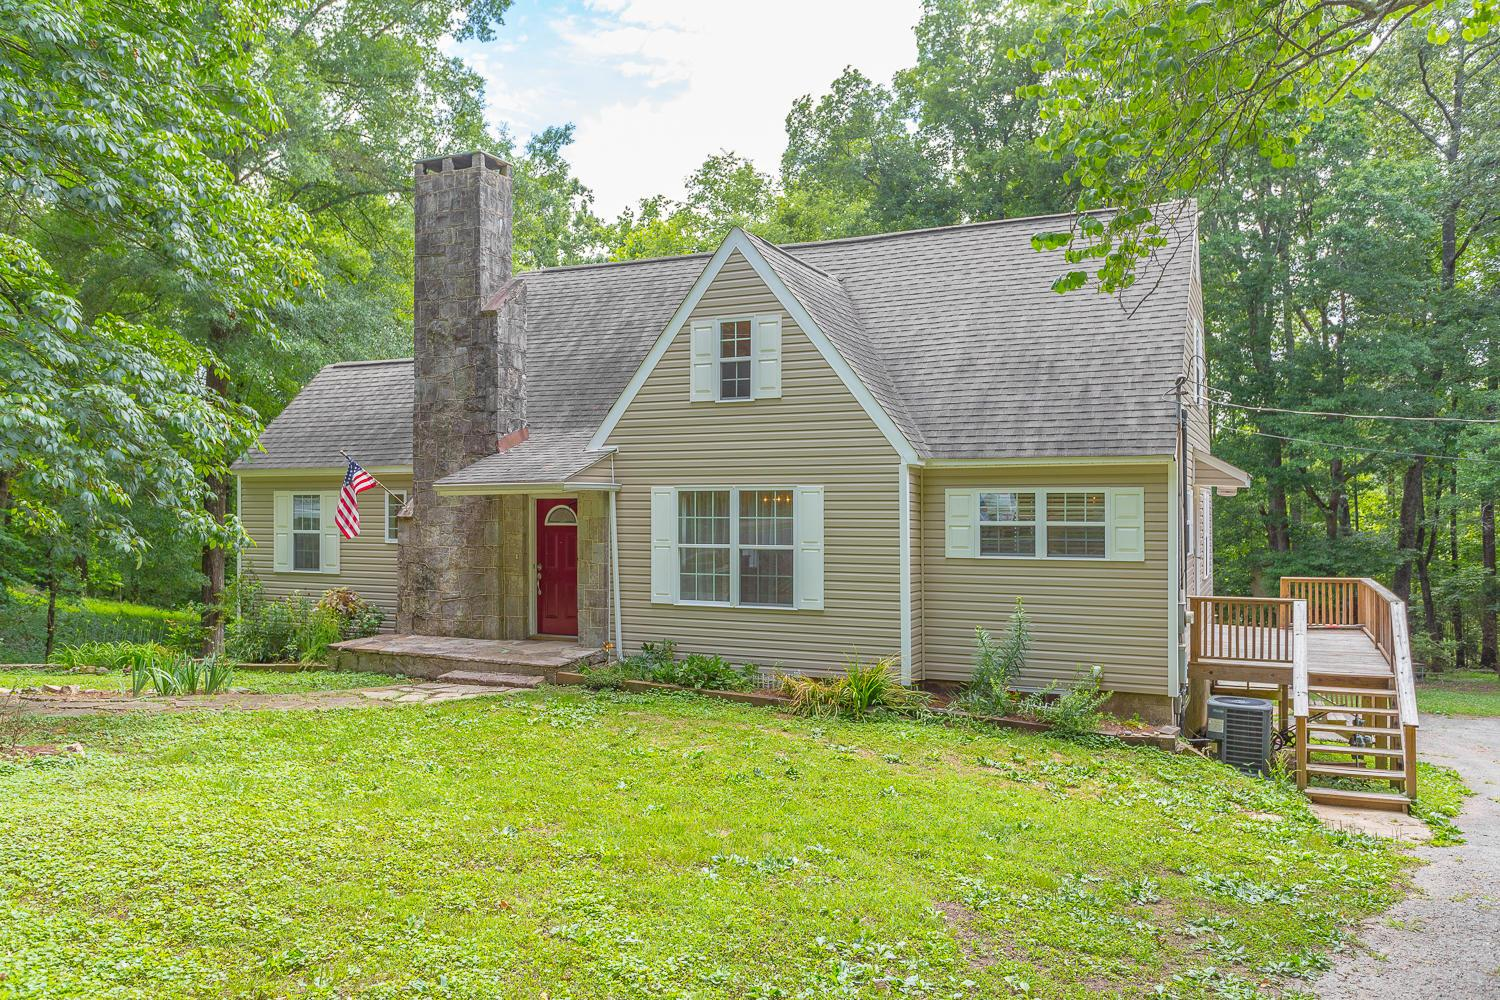 Local Lafayette Ga Real Estate Listings And Homes For Sale Bhgre